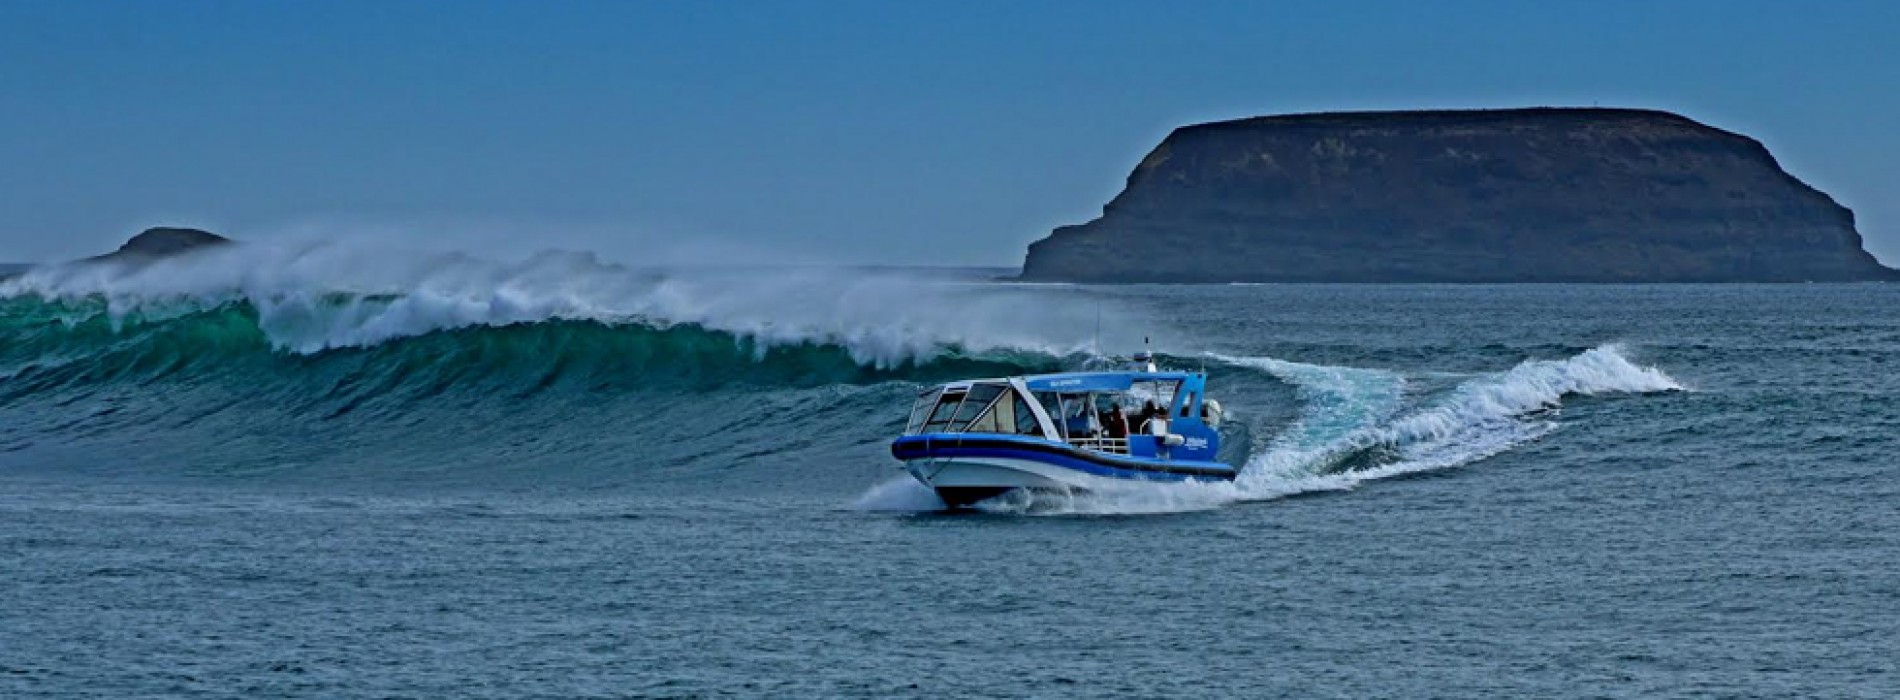 Top 8 reasons to visit Phillip Island